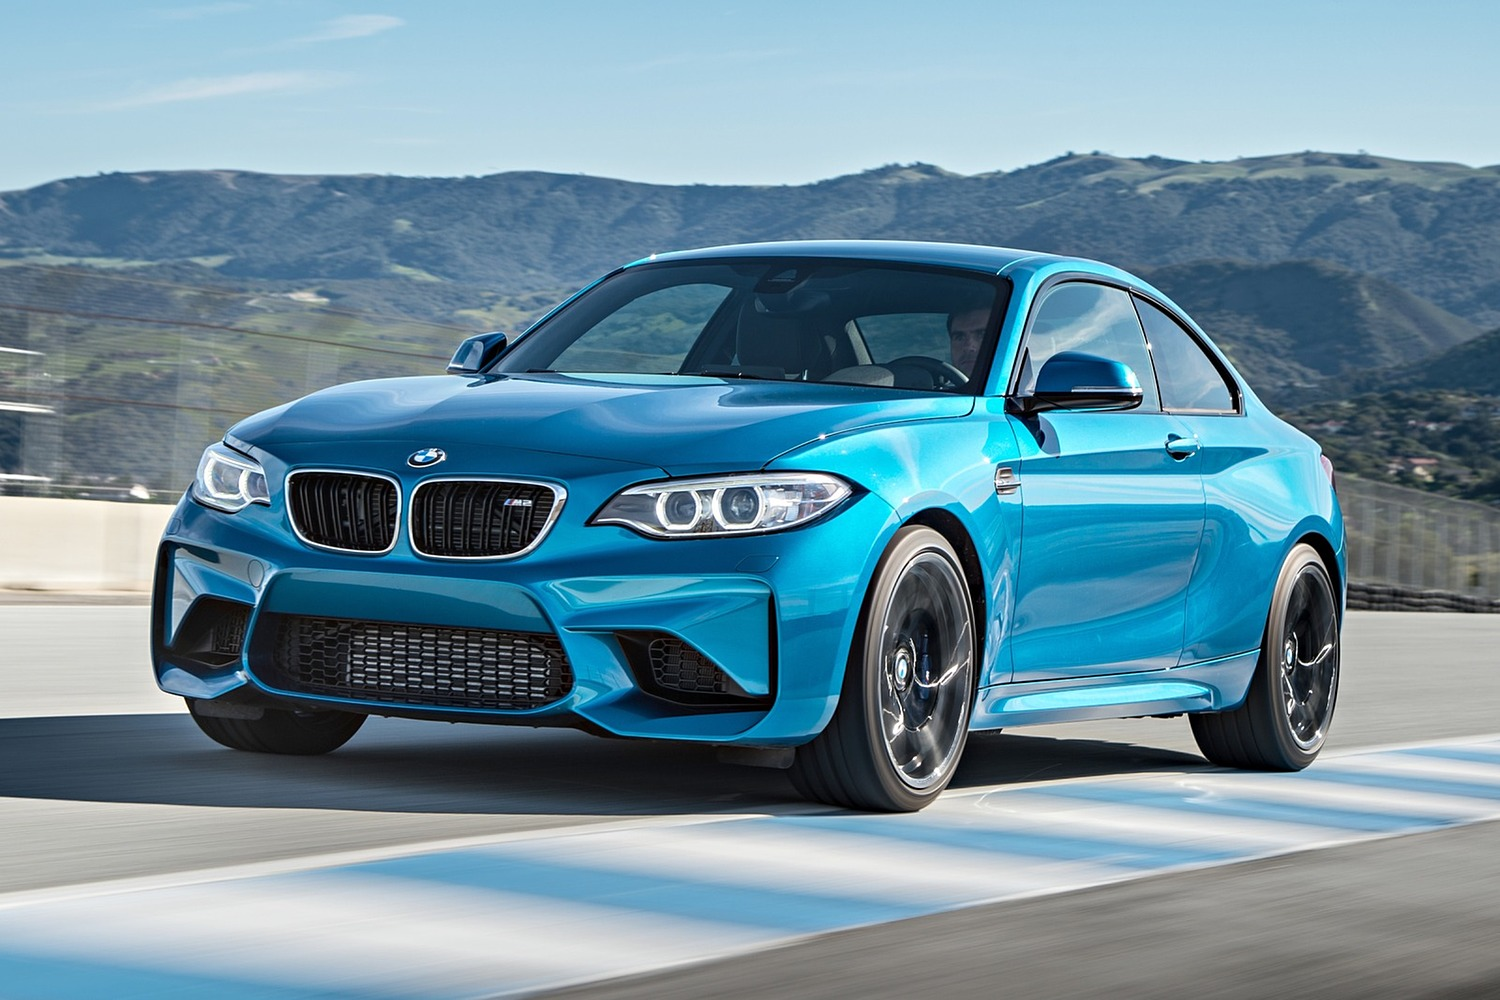 BMW M2 Coupe Exterior (2017 model year shown)